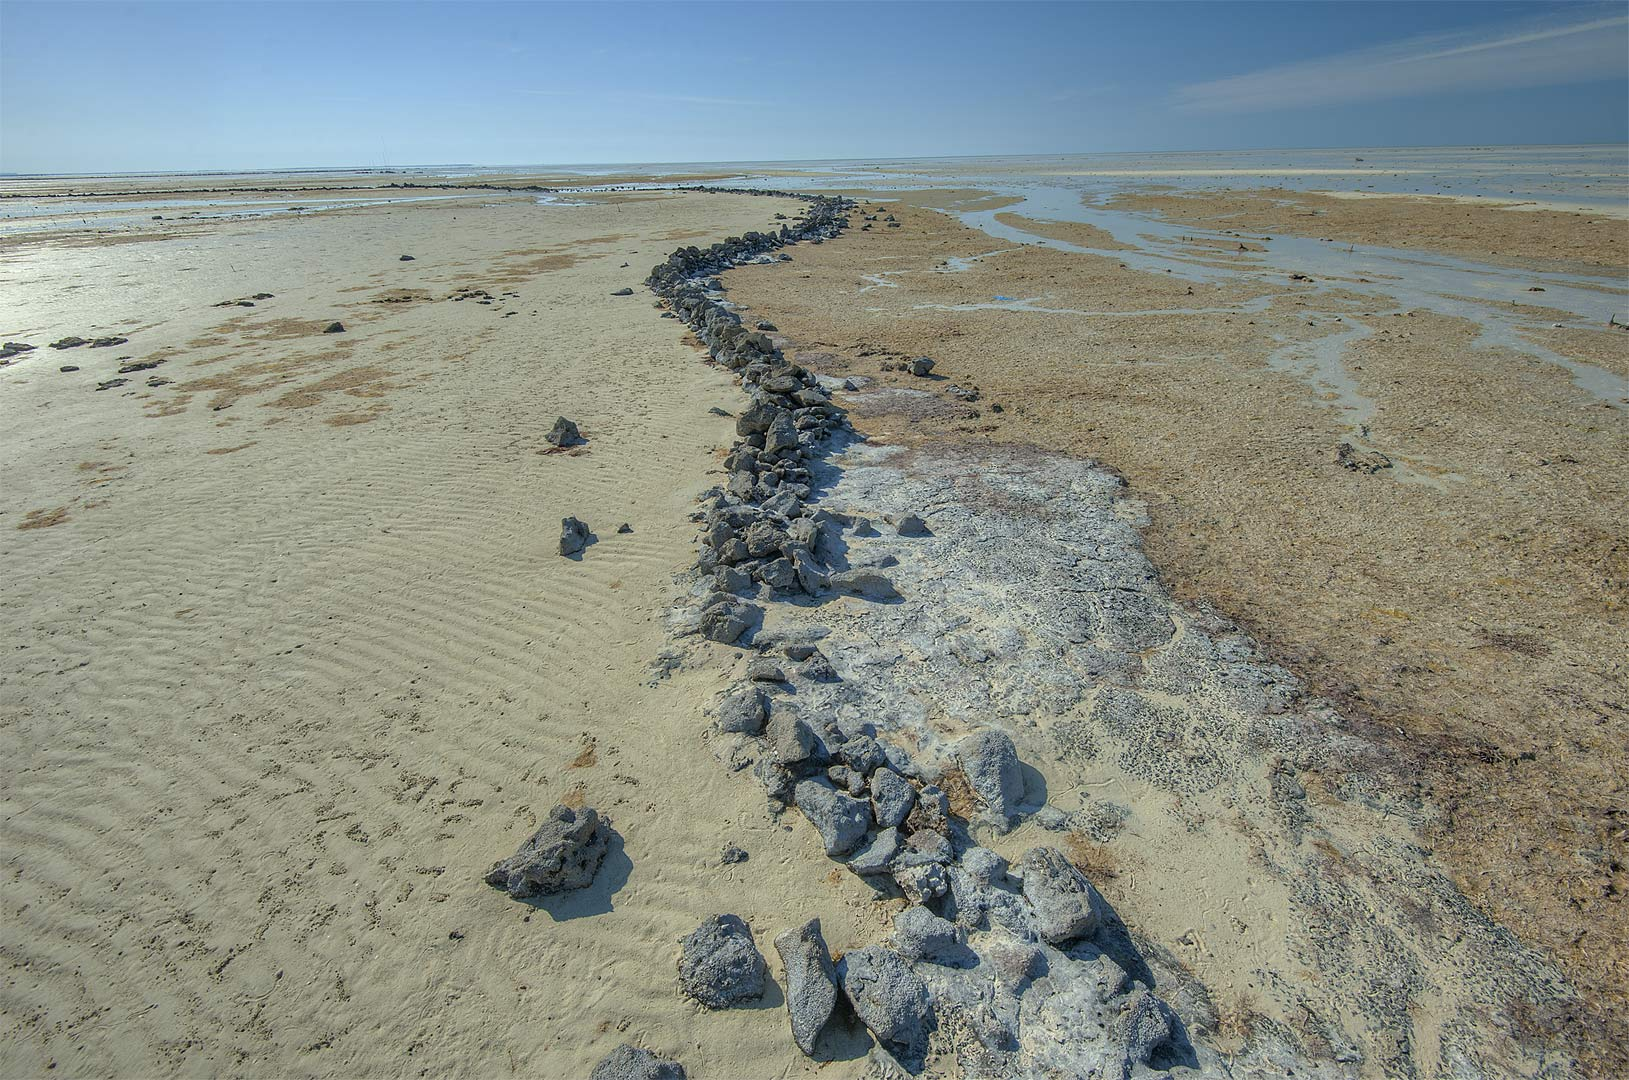 Intertidal stone fish traps near a village of Al...Jumayl) west of Ruwais. Northern Qatar